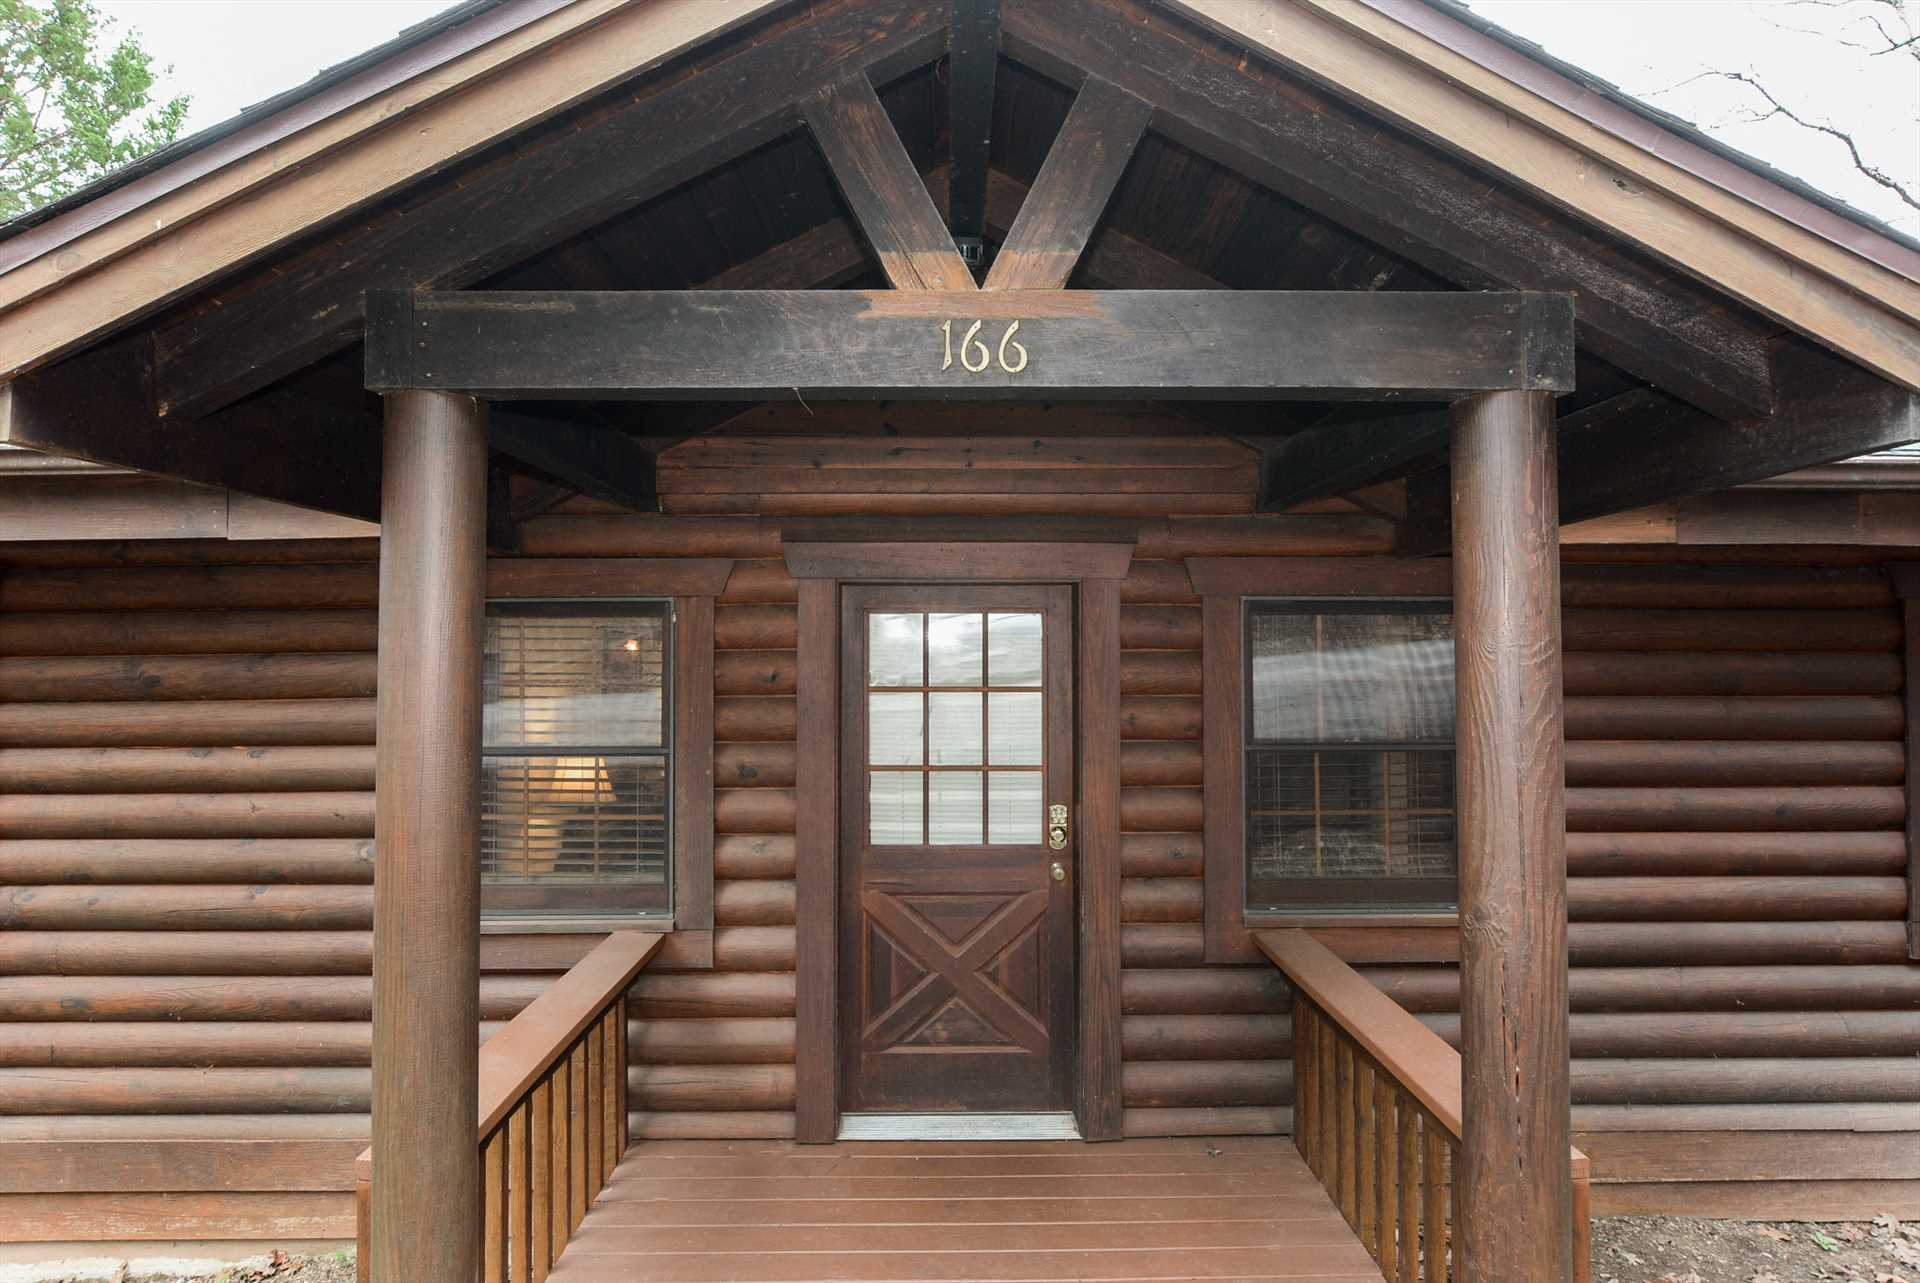 The genuine log cabin is perfect for your getaway.